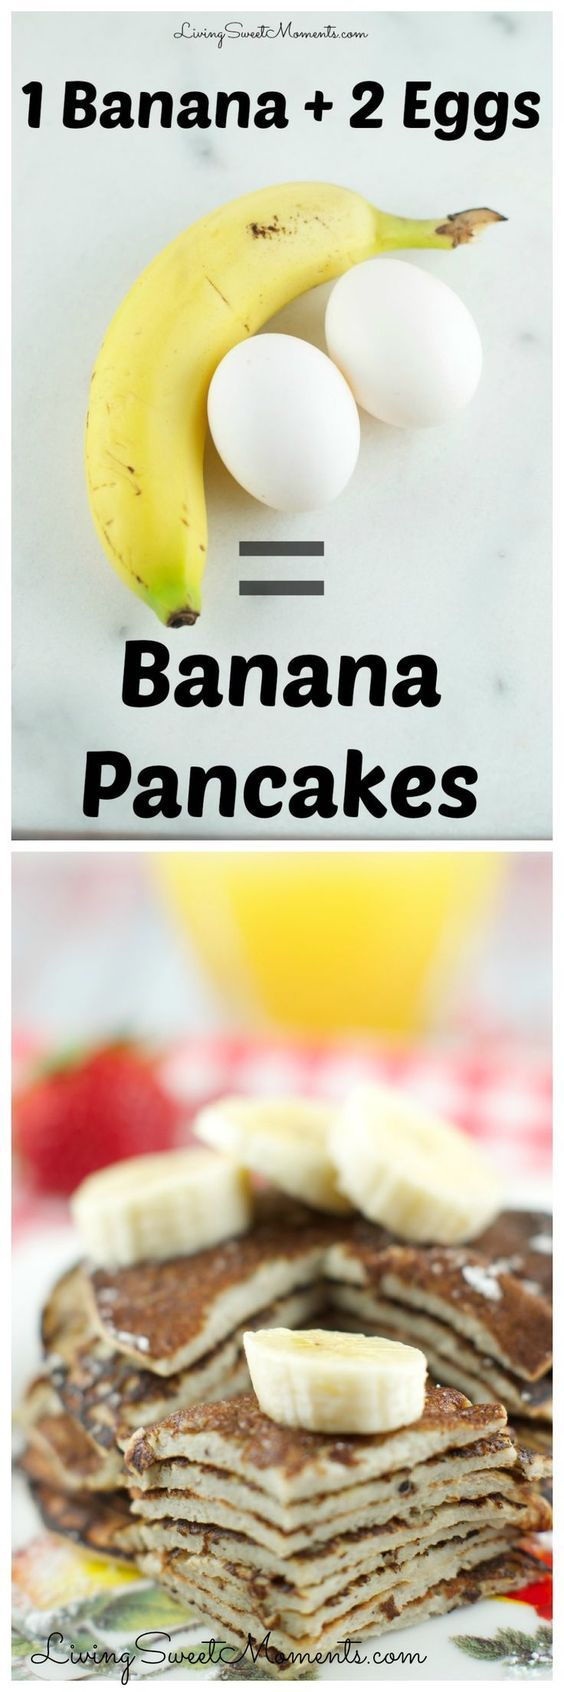 These 2 Ingredient Banana Pancakes are so easy to make! All you need is 2 eggs and a banana in a blender! That's it. They are gluten free and so delicious.